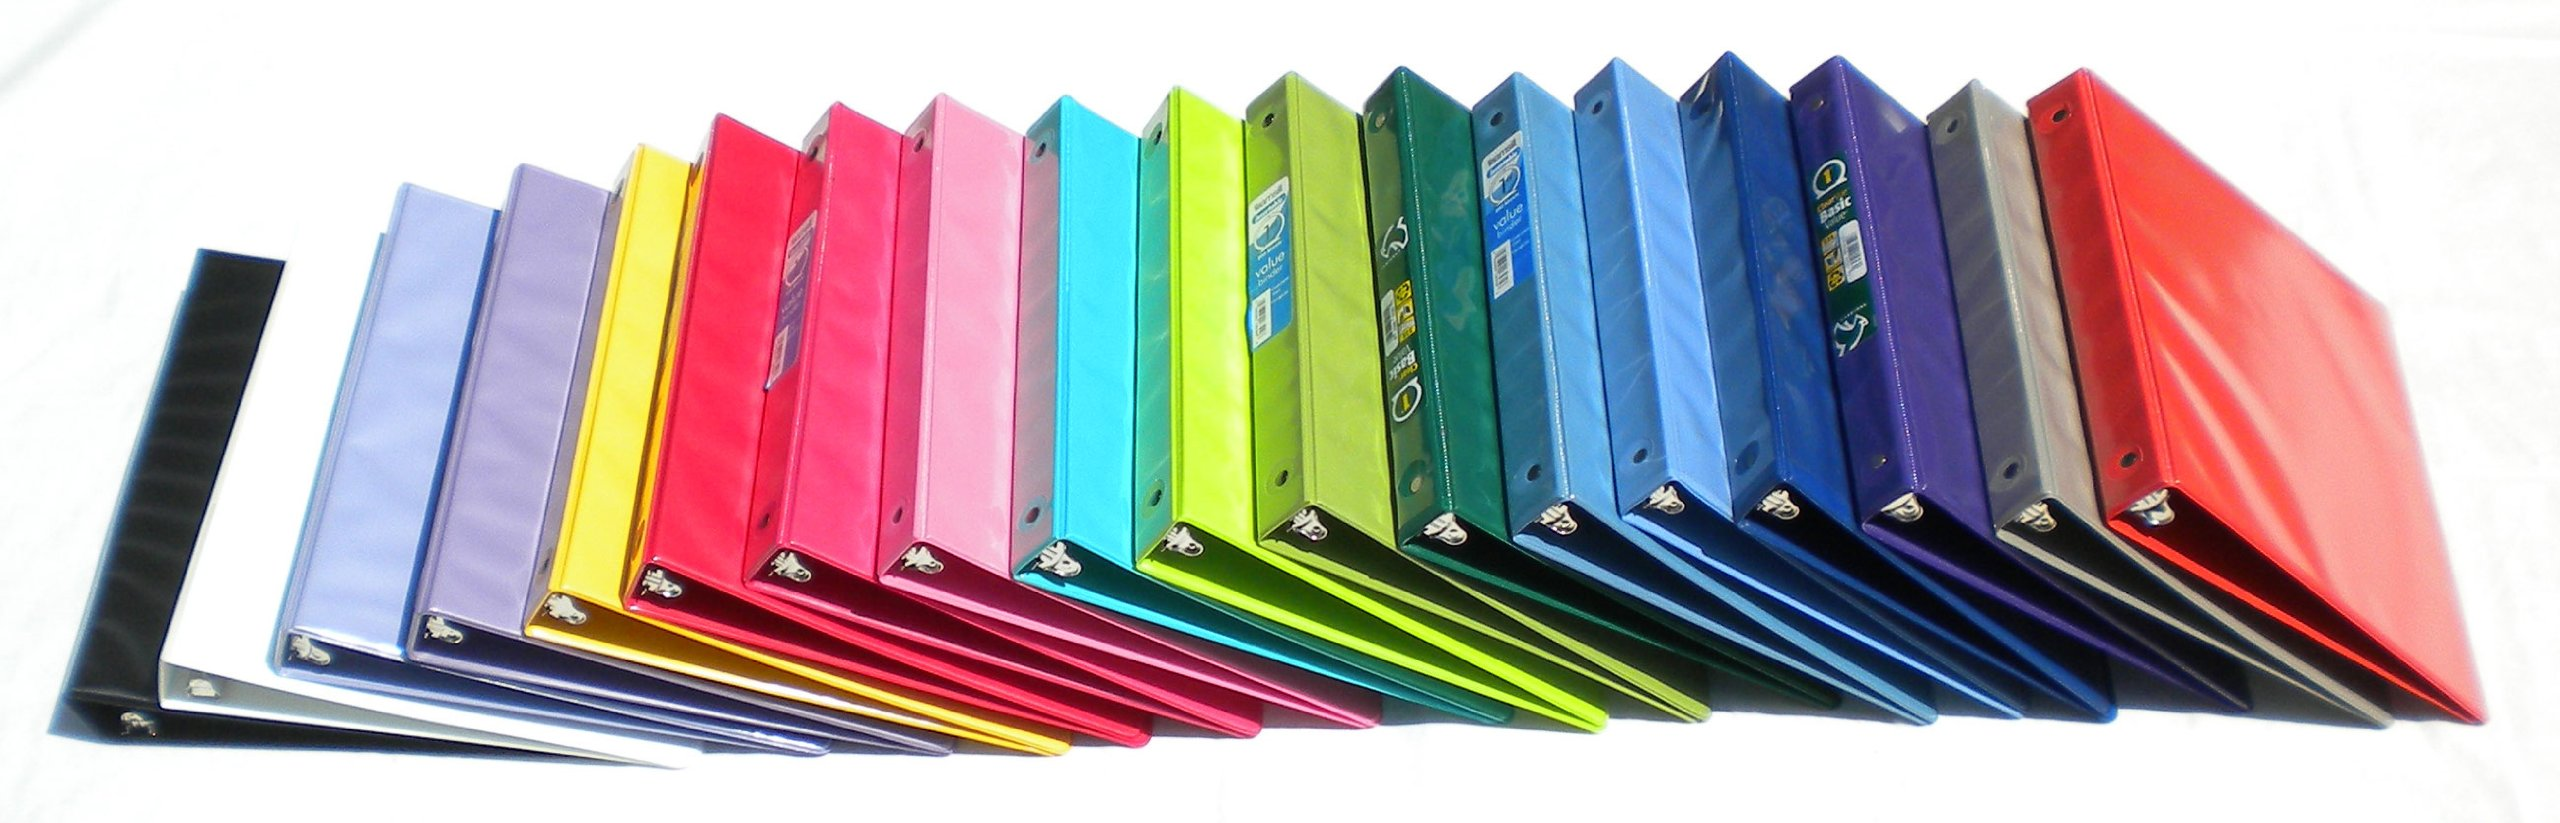 Samsill Assorted Colors 3-Ring View-Binders, 1-Inch Capacity, 8.5'' x 11'', with Insertion Sleeves and Inside Pockets, BOX OF 18